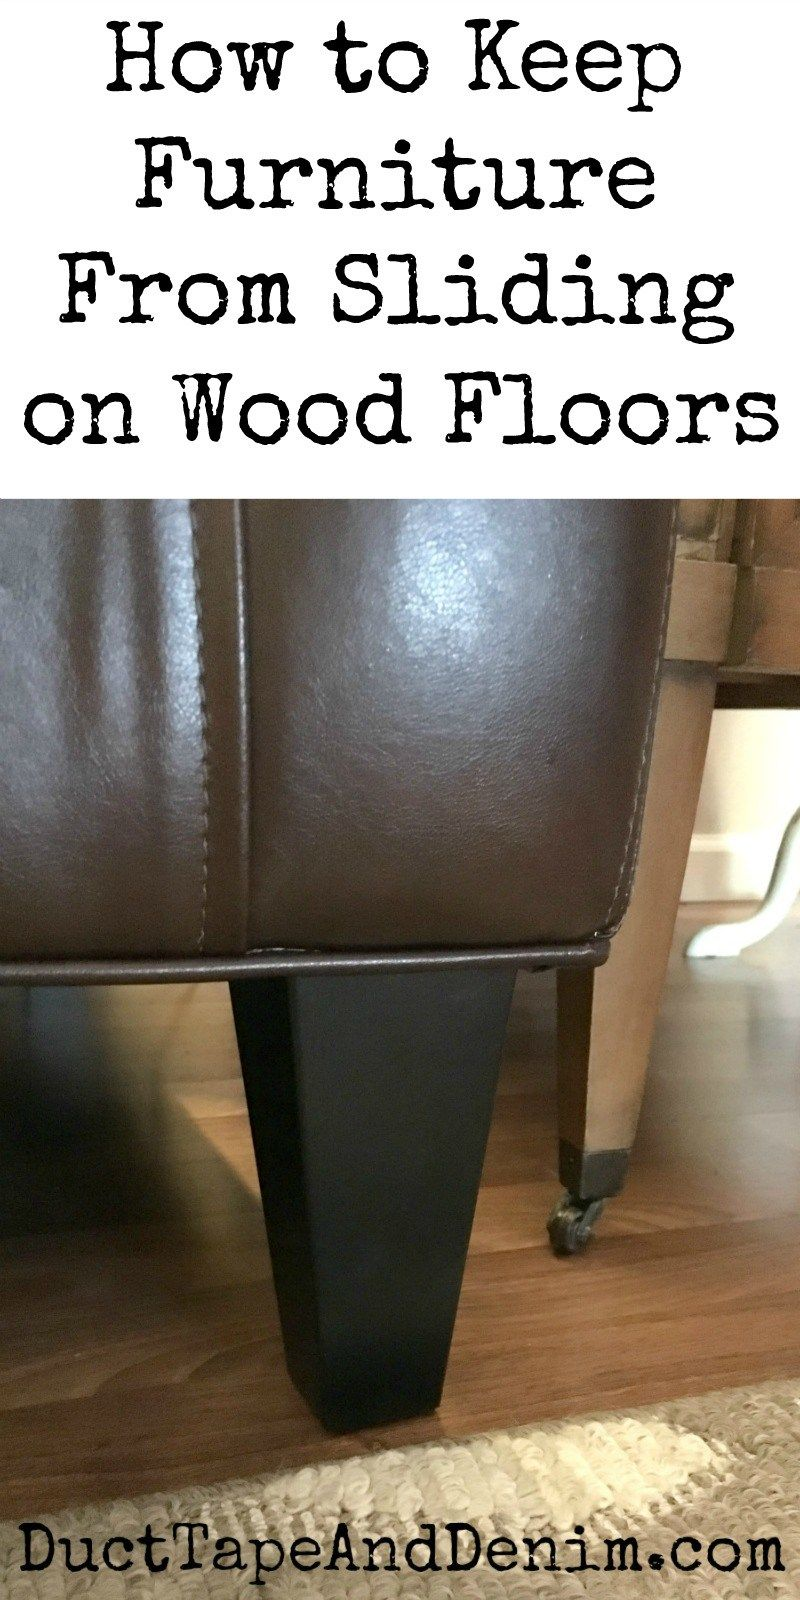 How To Keep Furniture From Sliding On Wood Floors Best